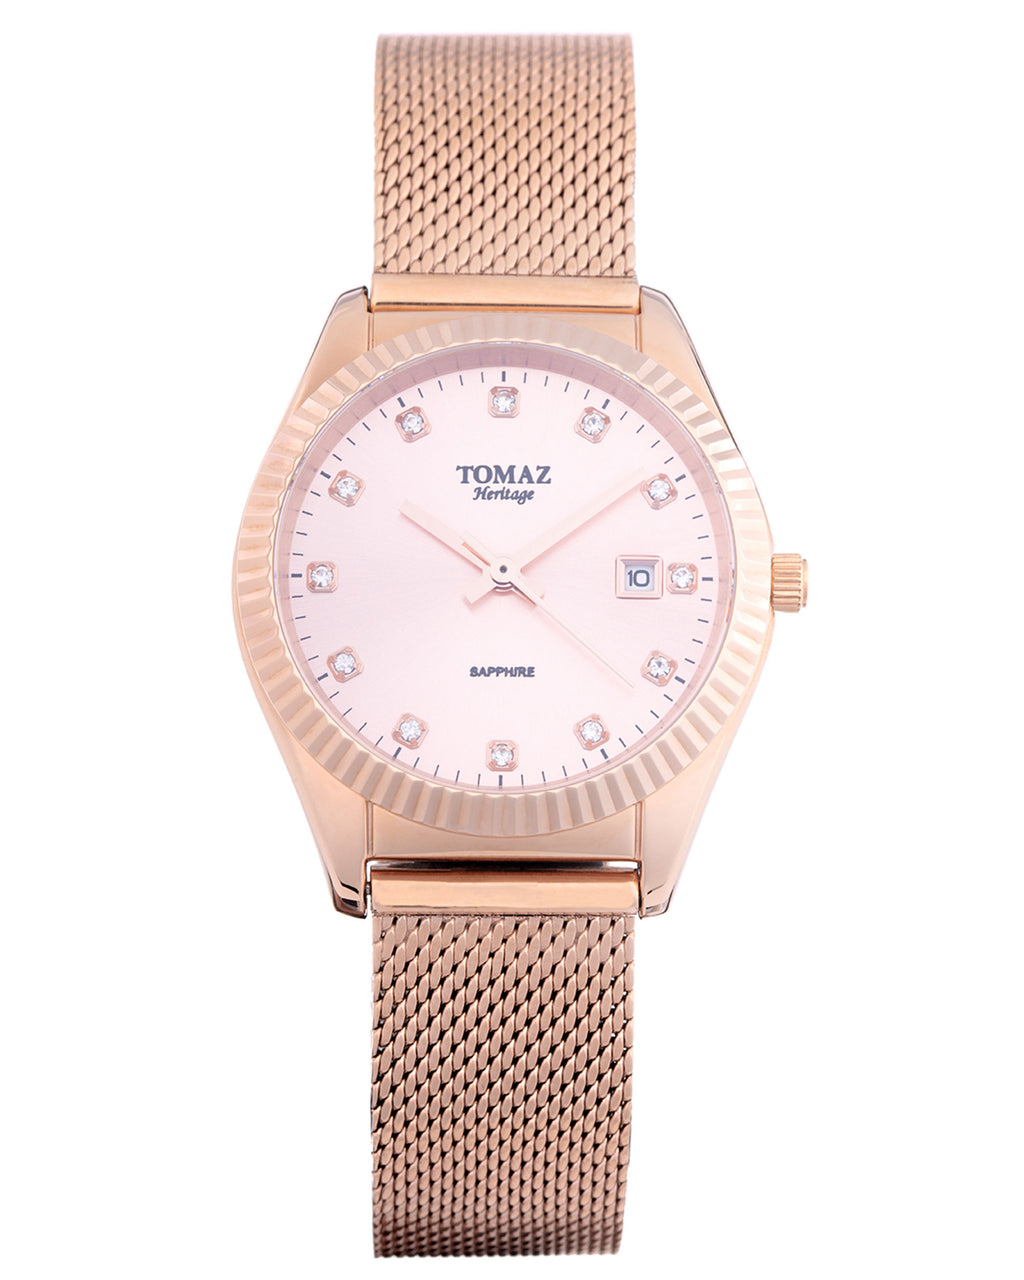 Tomaz Ladies's Watch TQ016L (Rose Gold)